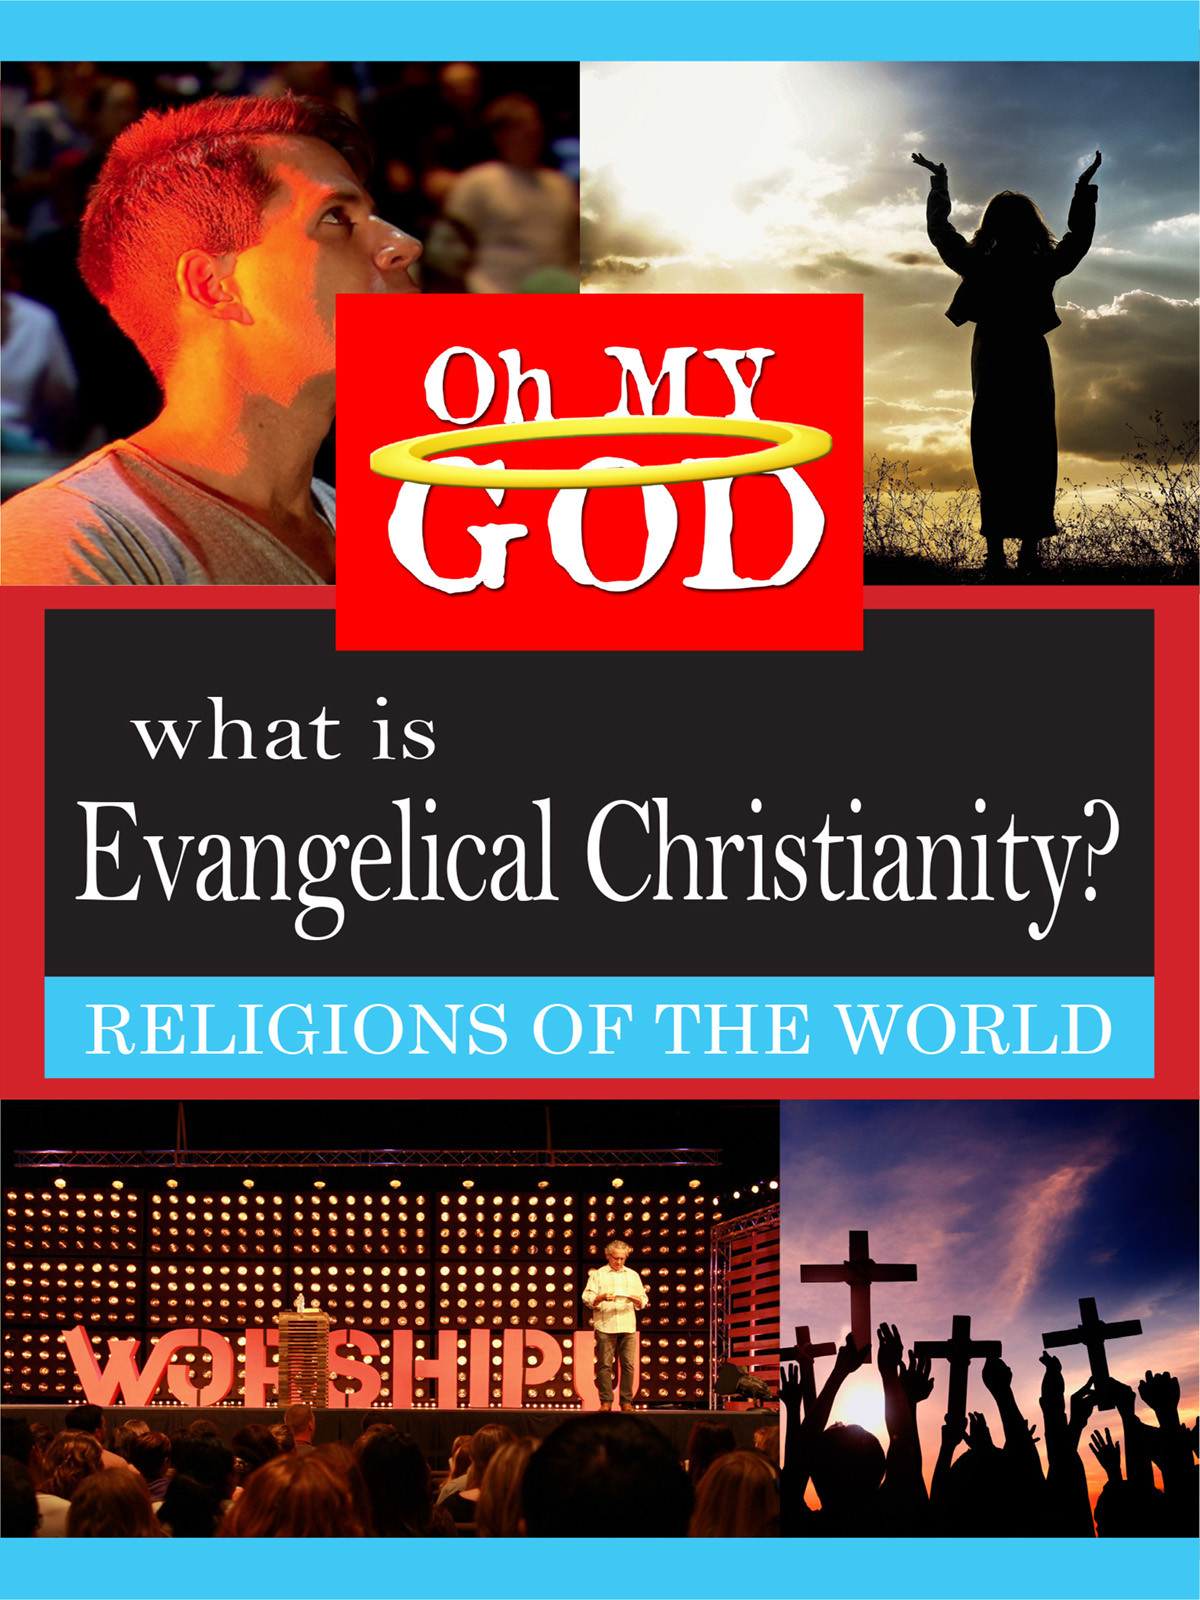 T2515 - What is Evangelical Christianity?